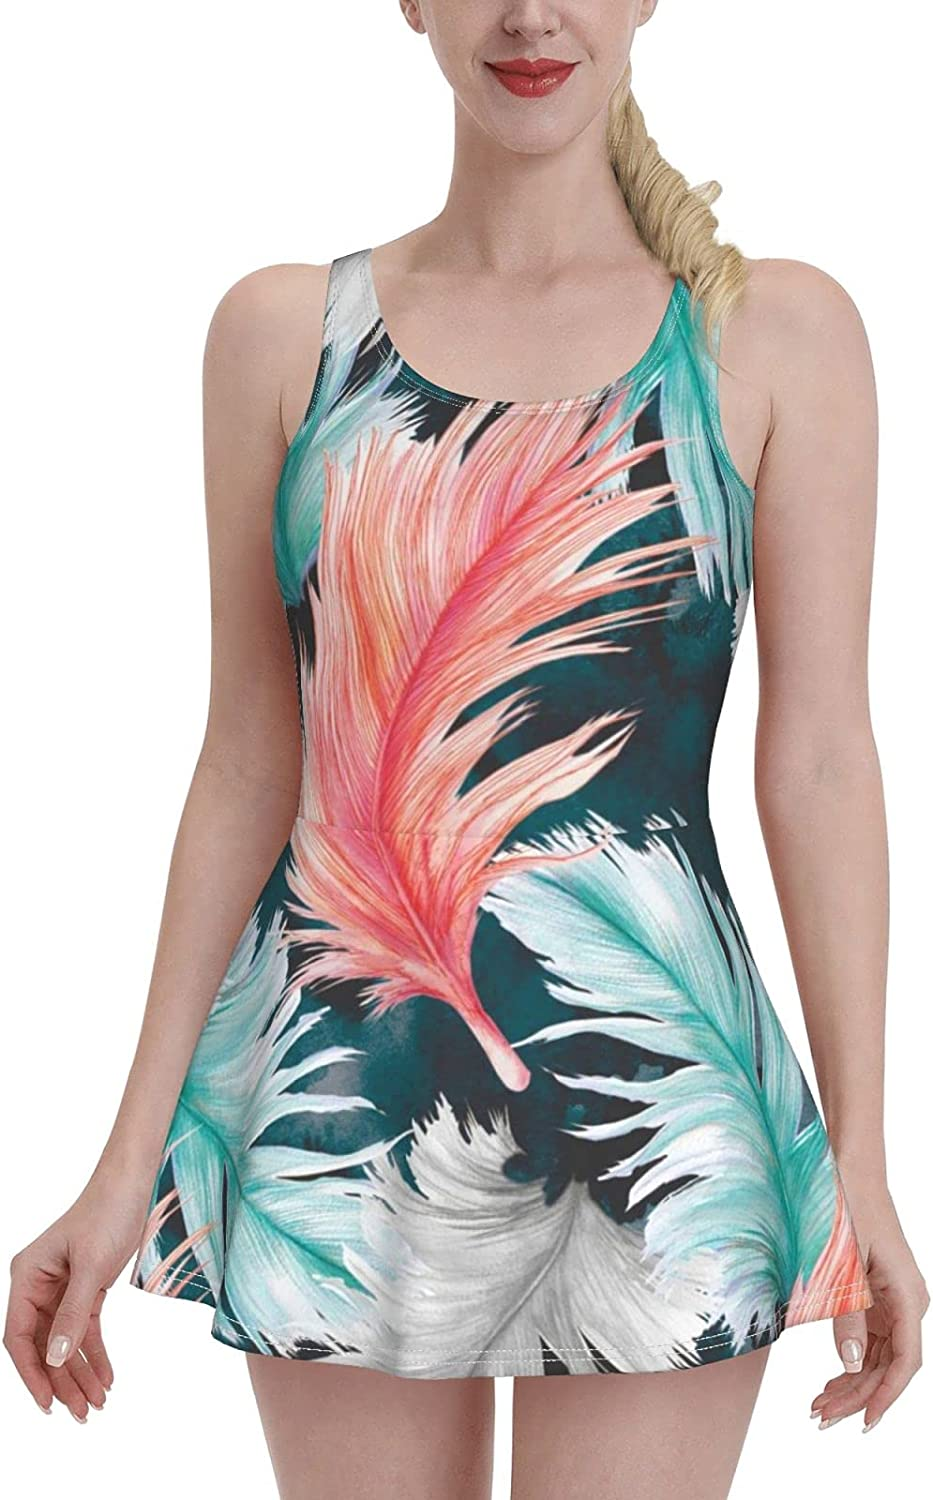 Flowing Sale Special Price Feathers Ladies Ruffled Adjustab One-Piece Large-scale sale Swimsuit with